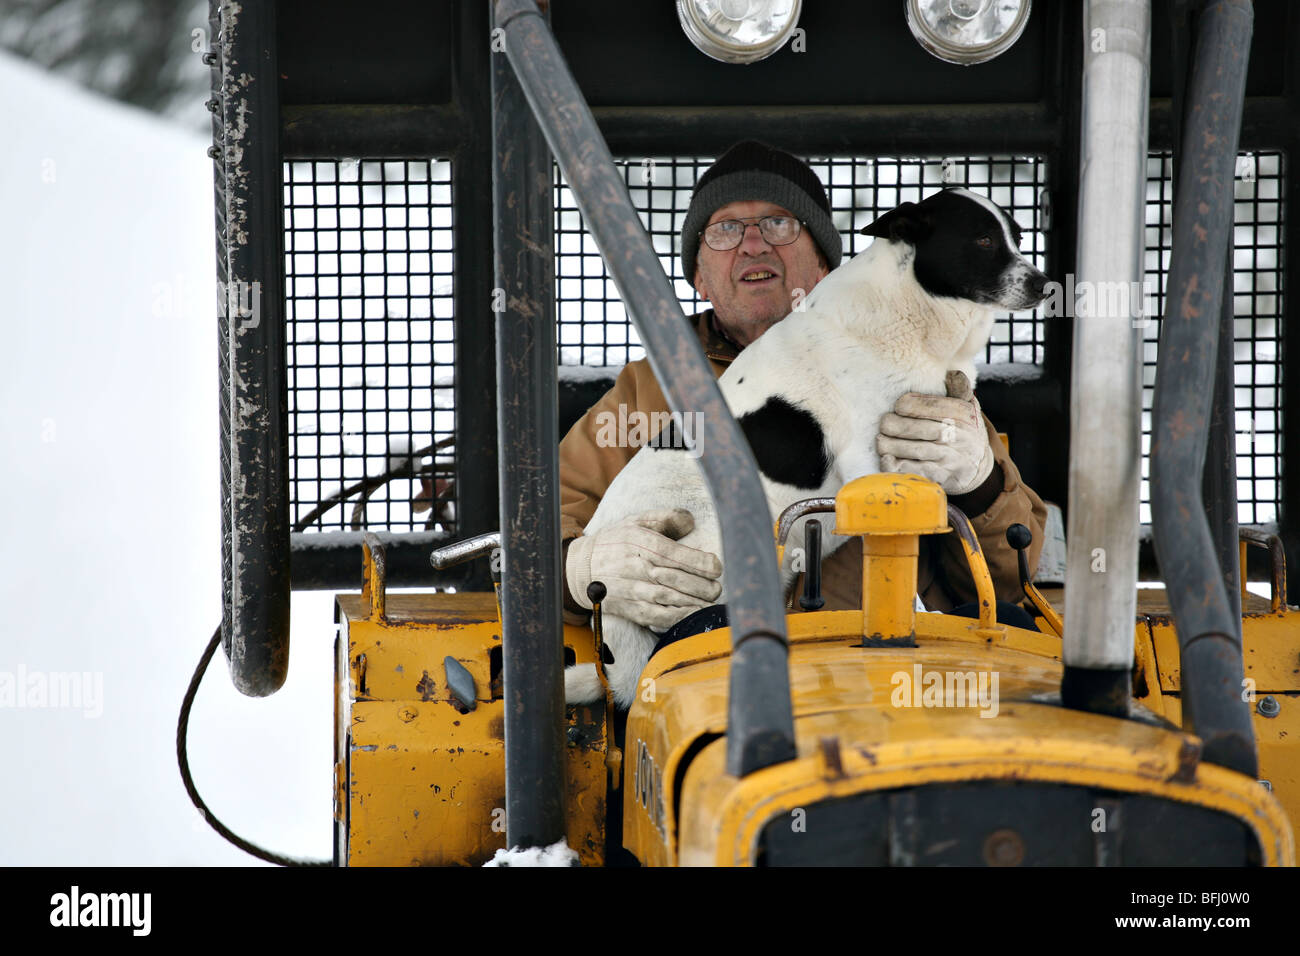 senior citizen and dog sitting in the cab of a bulldozer excavator